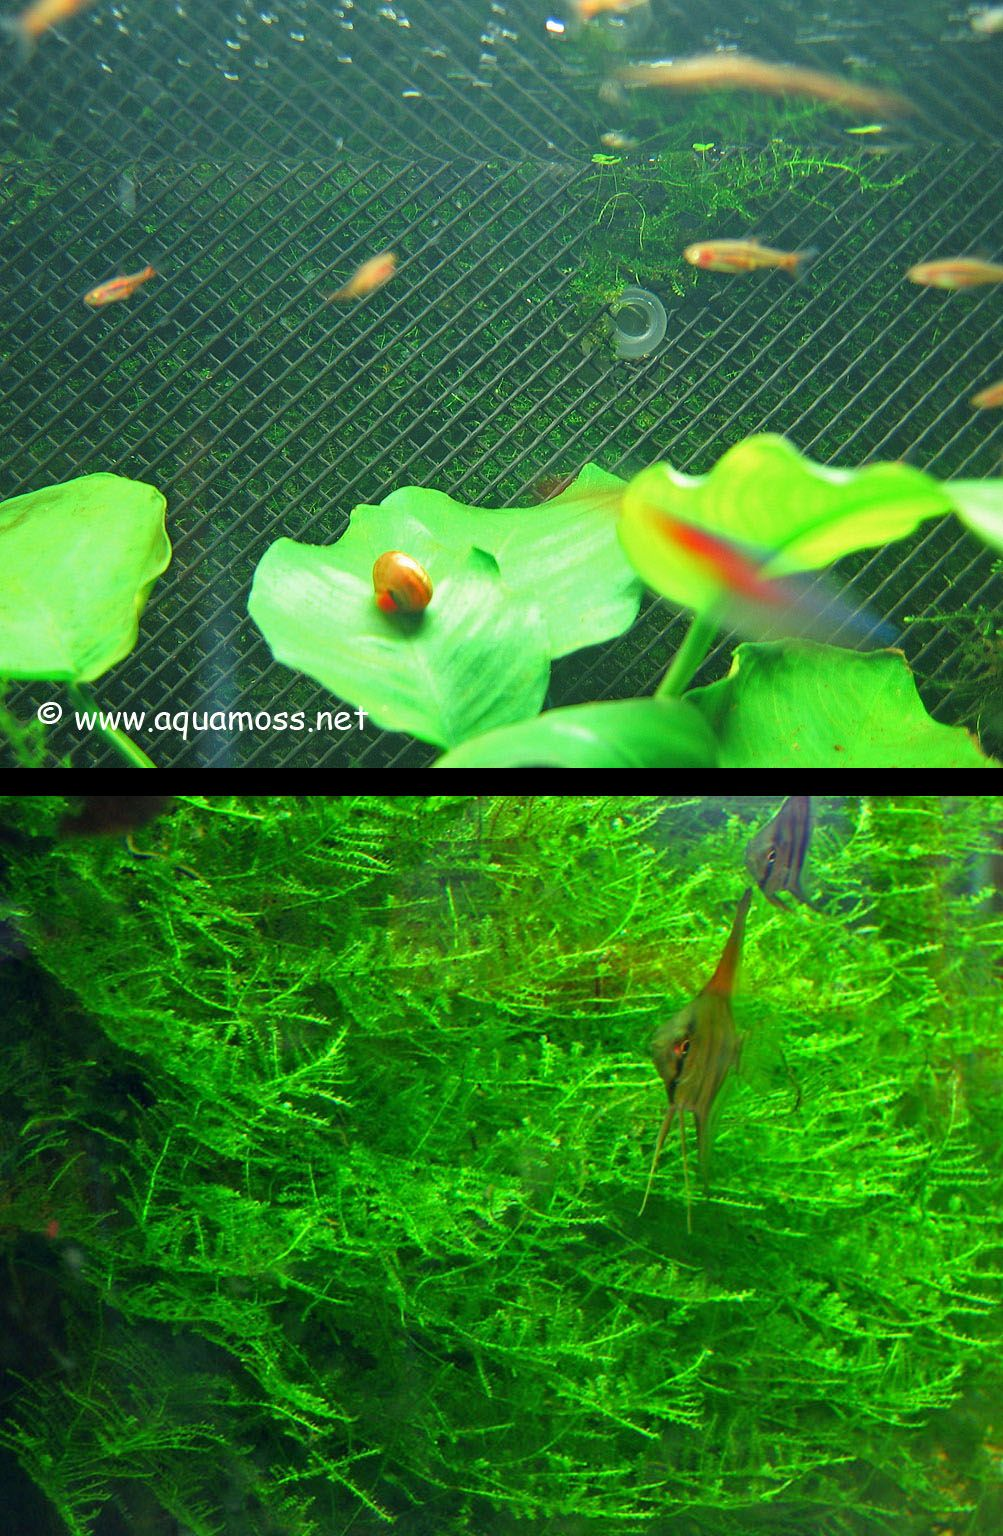 Freshwater aquarium fish beginners - How To Grow Aquatic Moss Wall Aquascape Aquarium Freshwater Aquarium Plants For Beginners